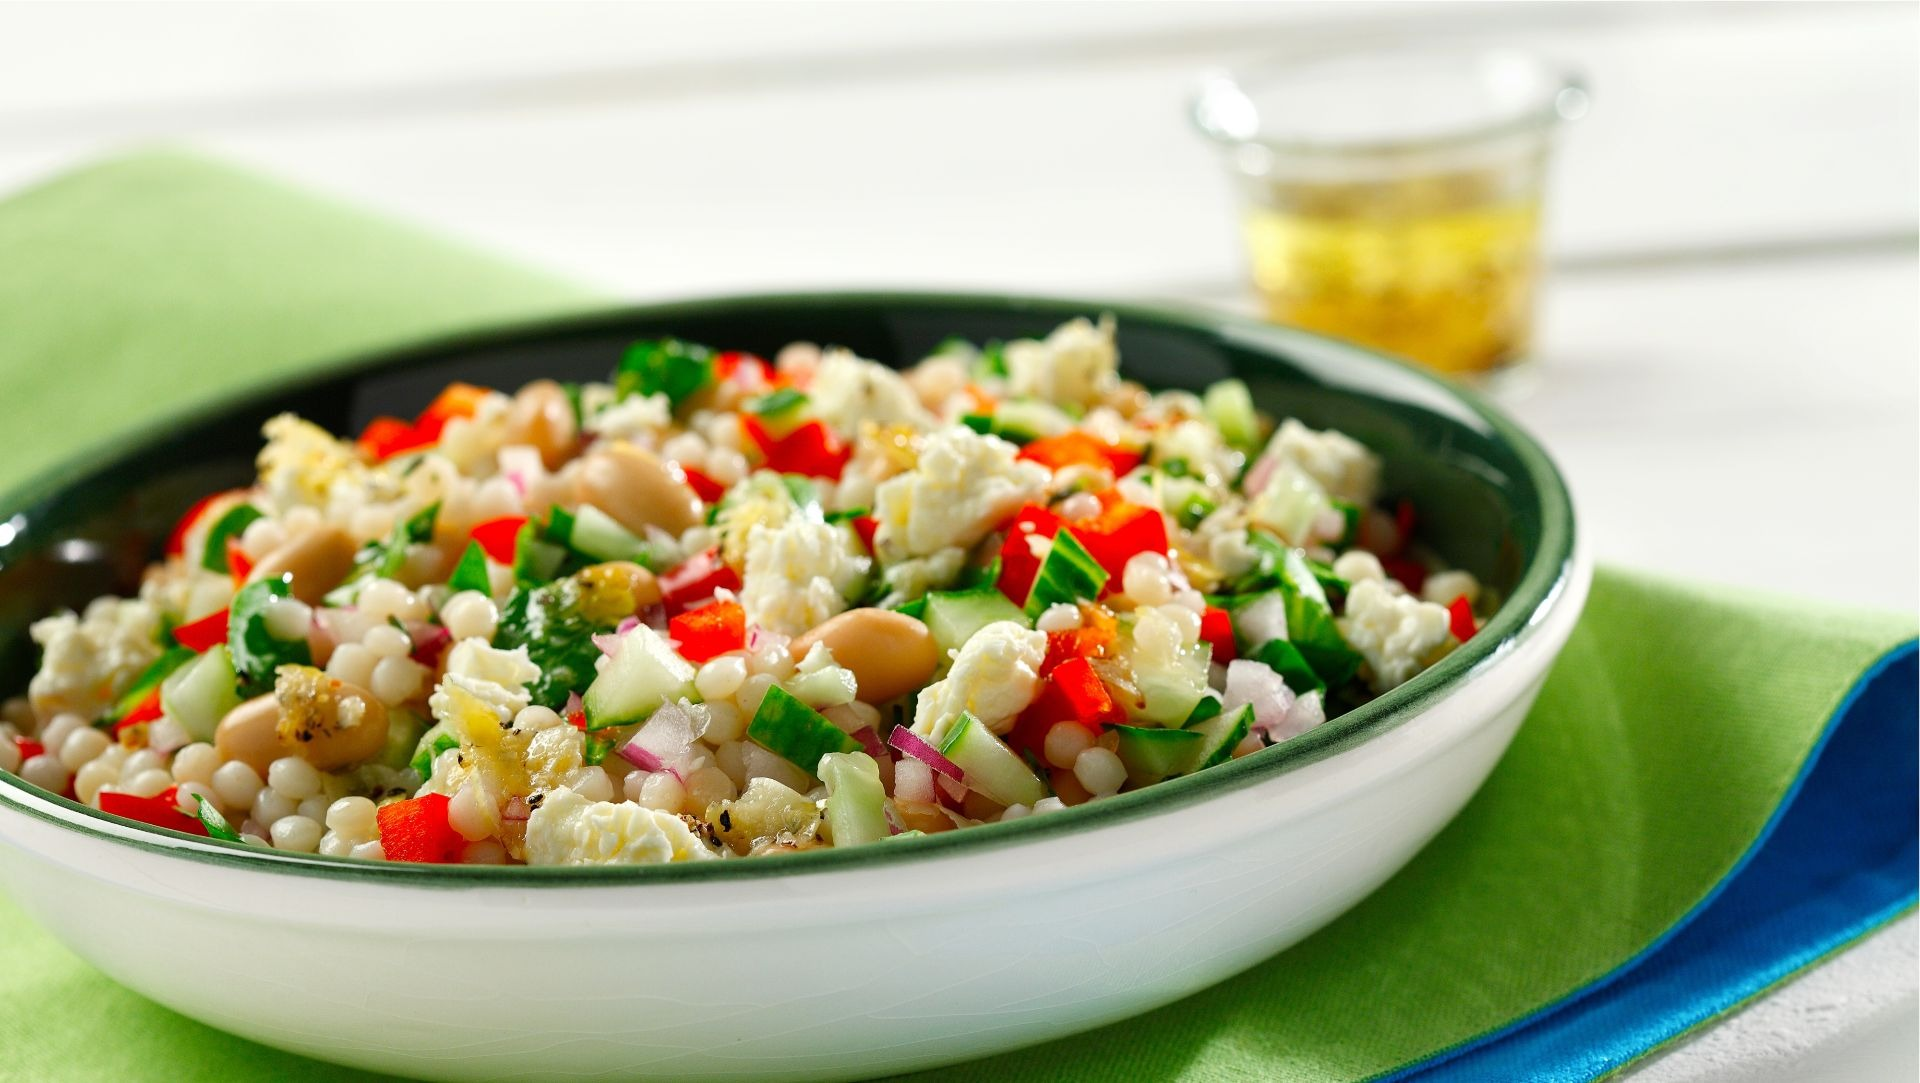 Rosemary-feta pearl couscous salad in a white bowl on a green placemat.